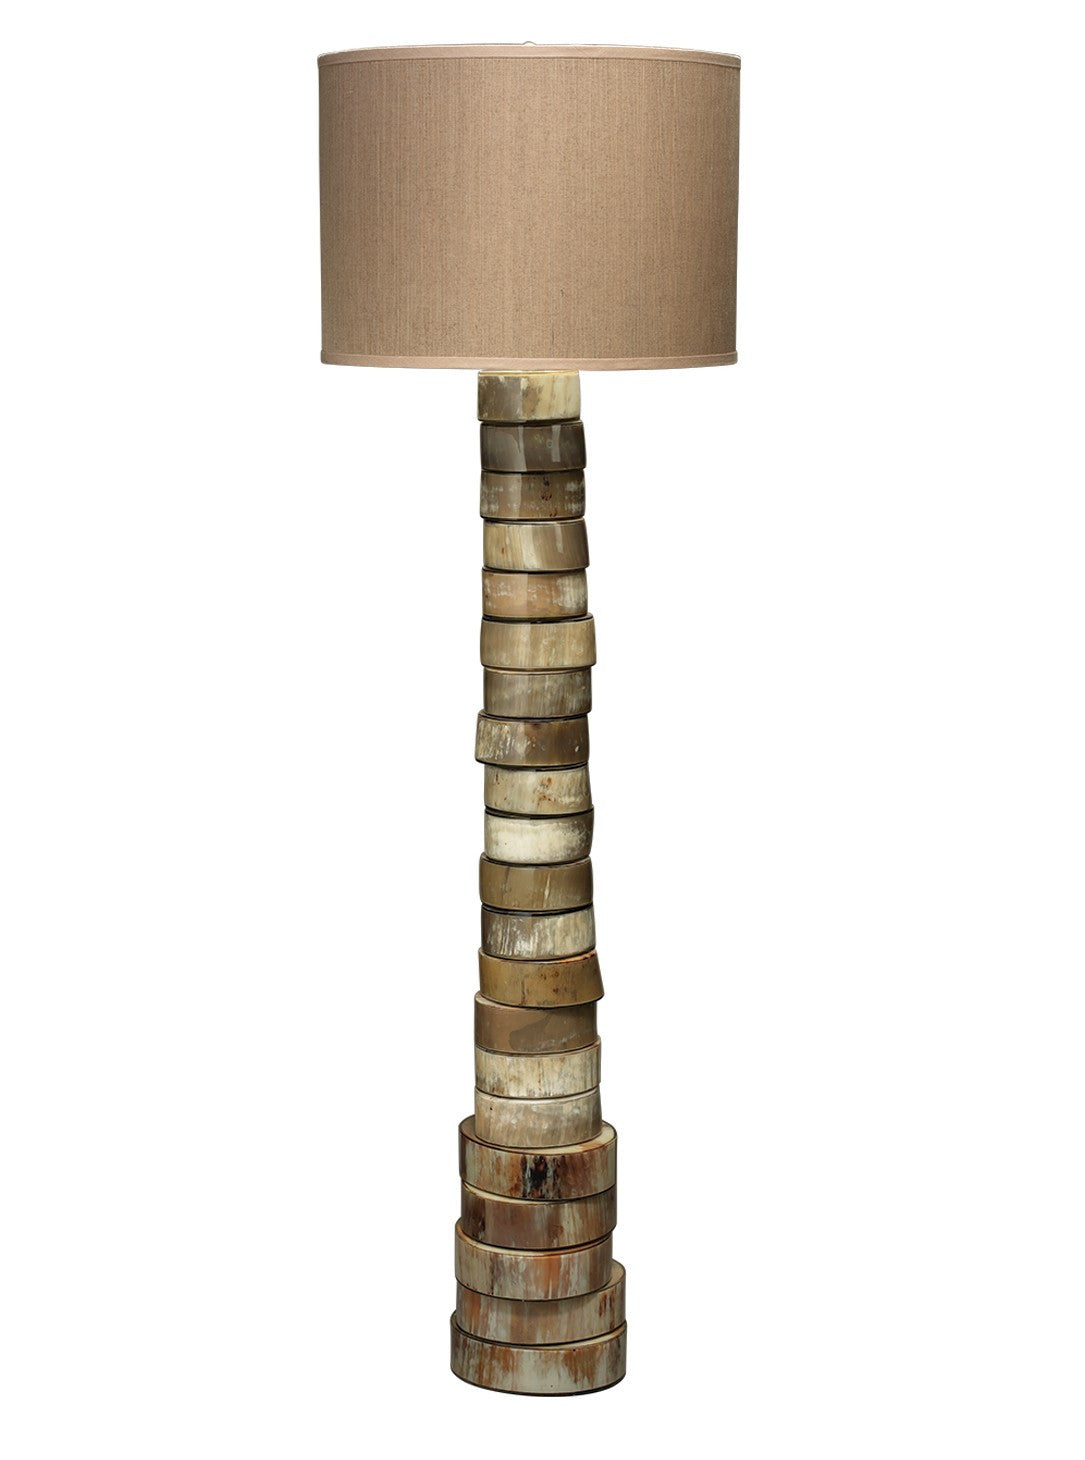 Jamie Young Stacked Horn Floor Lamp 1 1309